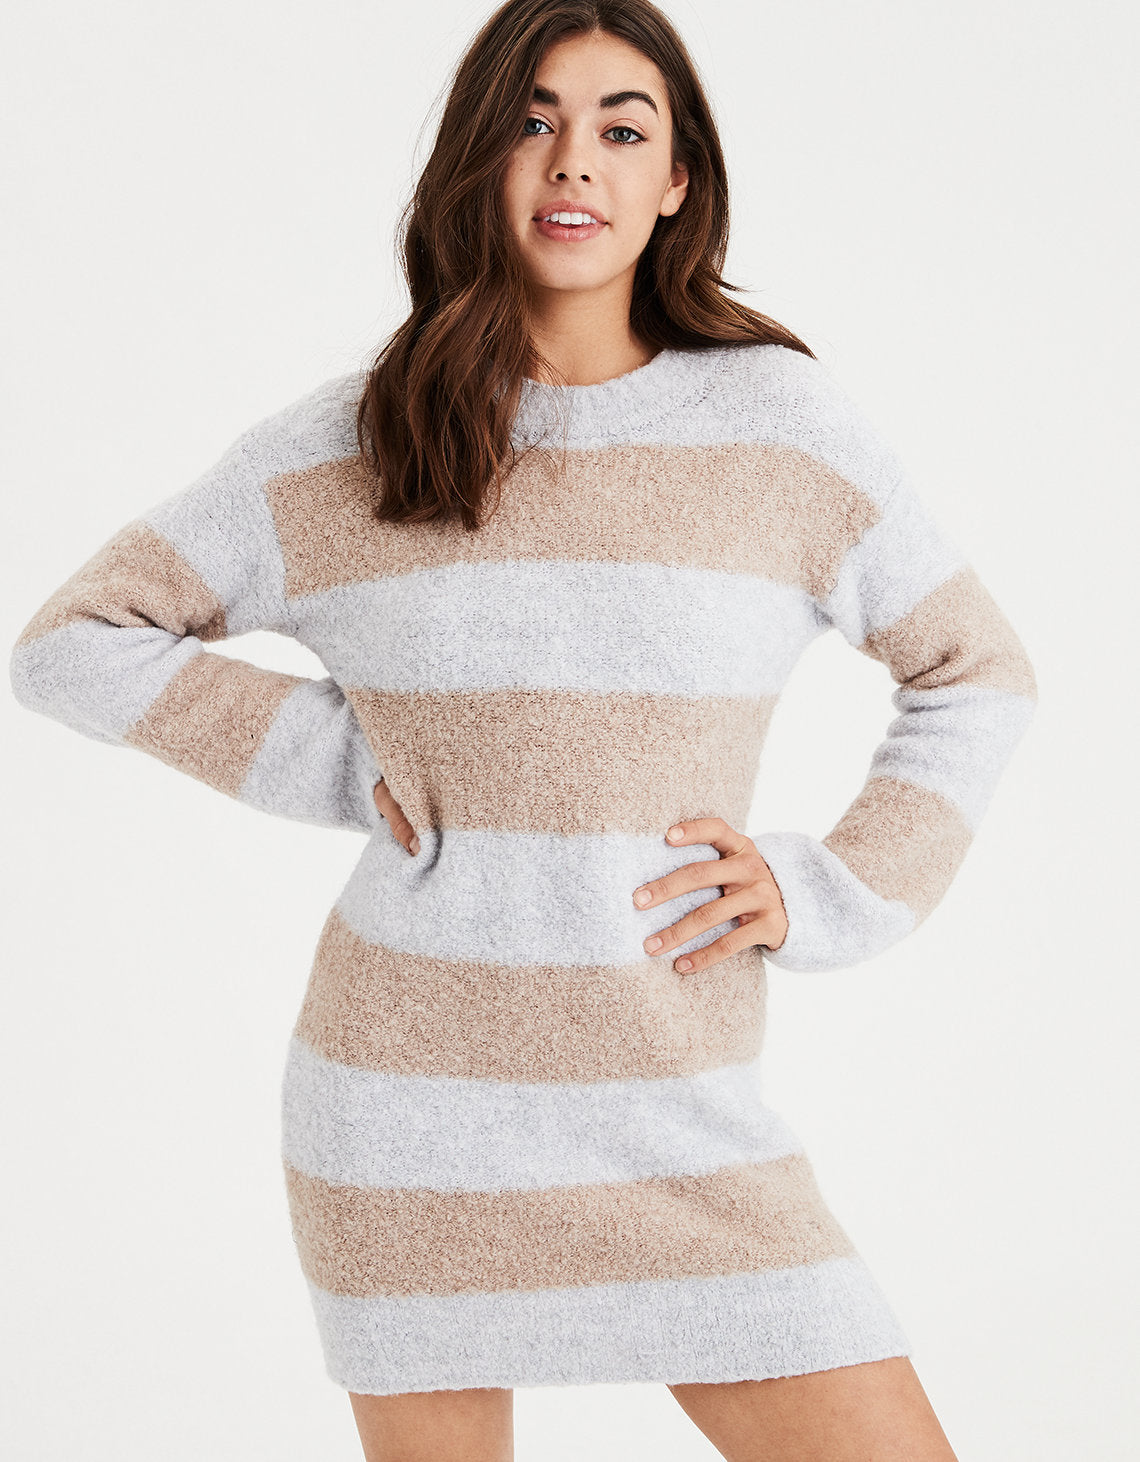 716296f706 AE Rugby Stripe Sweater Dress in Gray